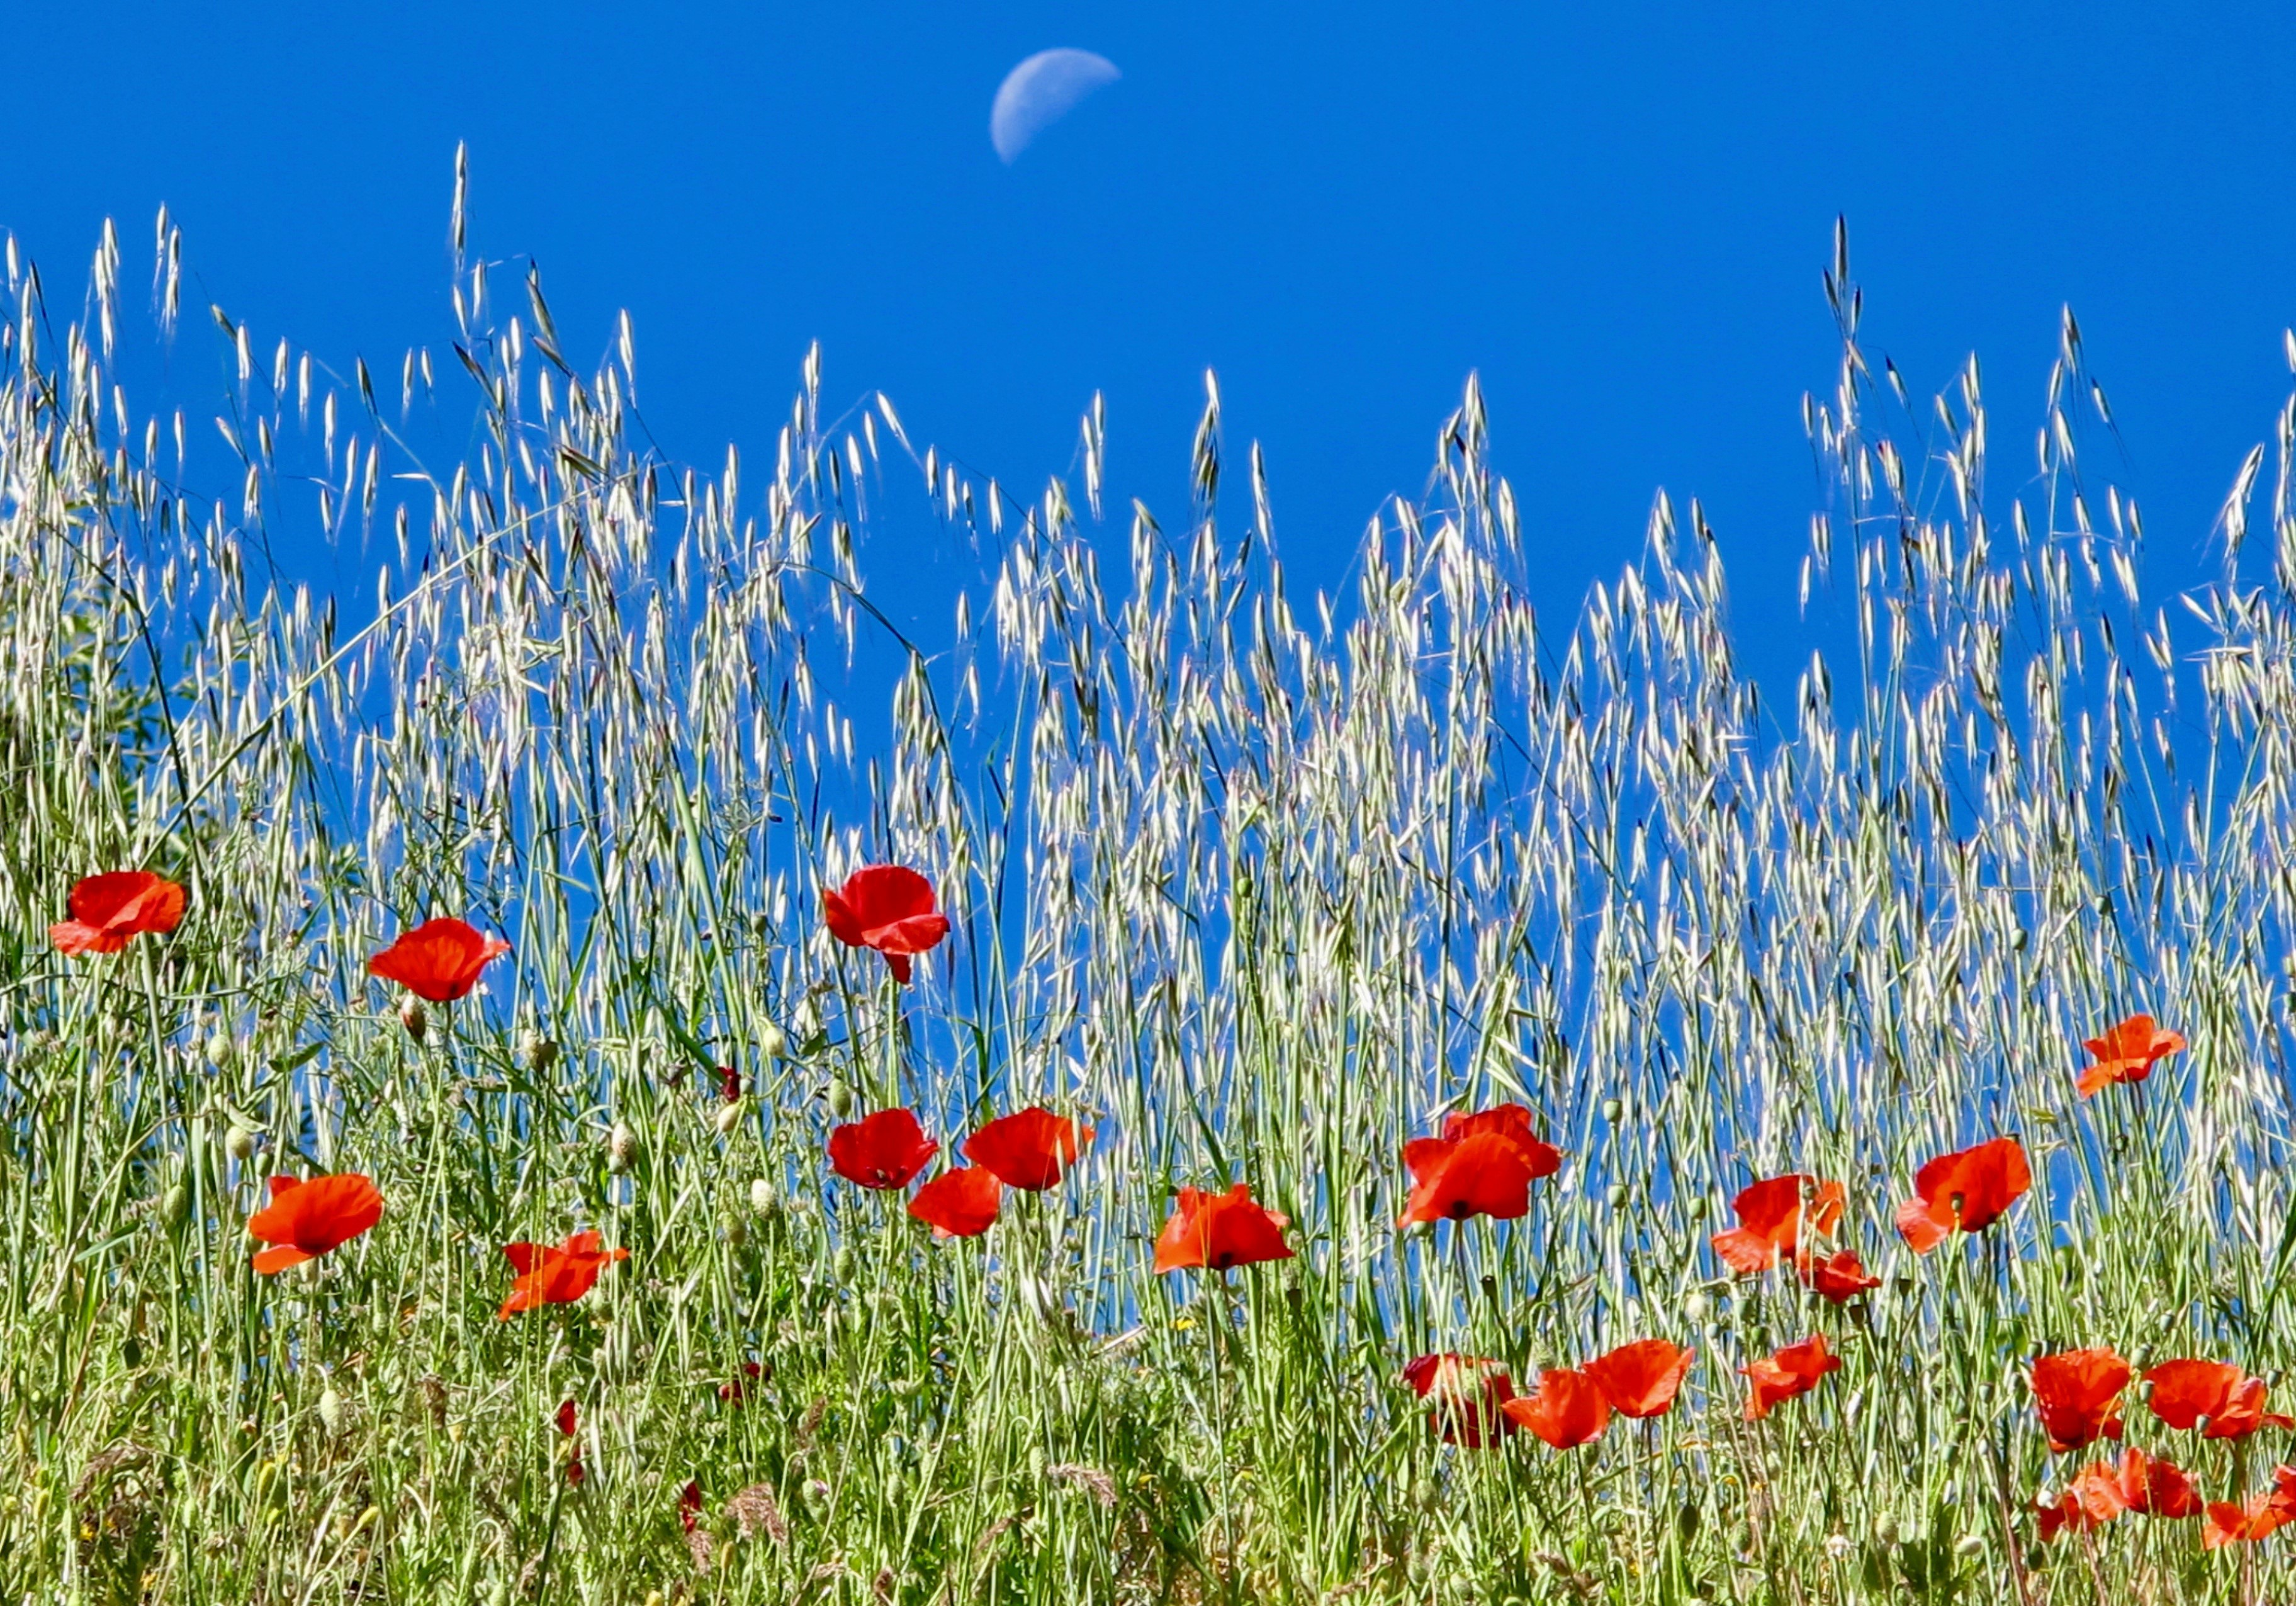 The Moon and Poppies, Andalusia